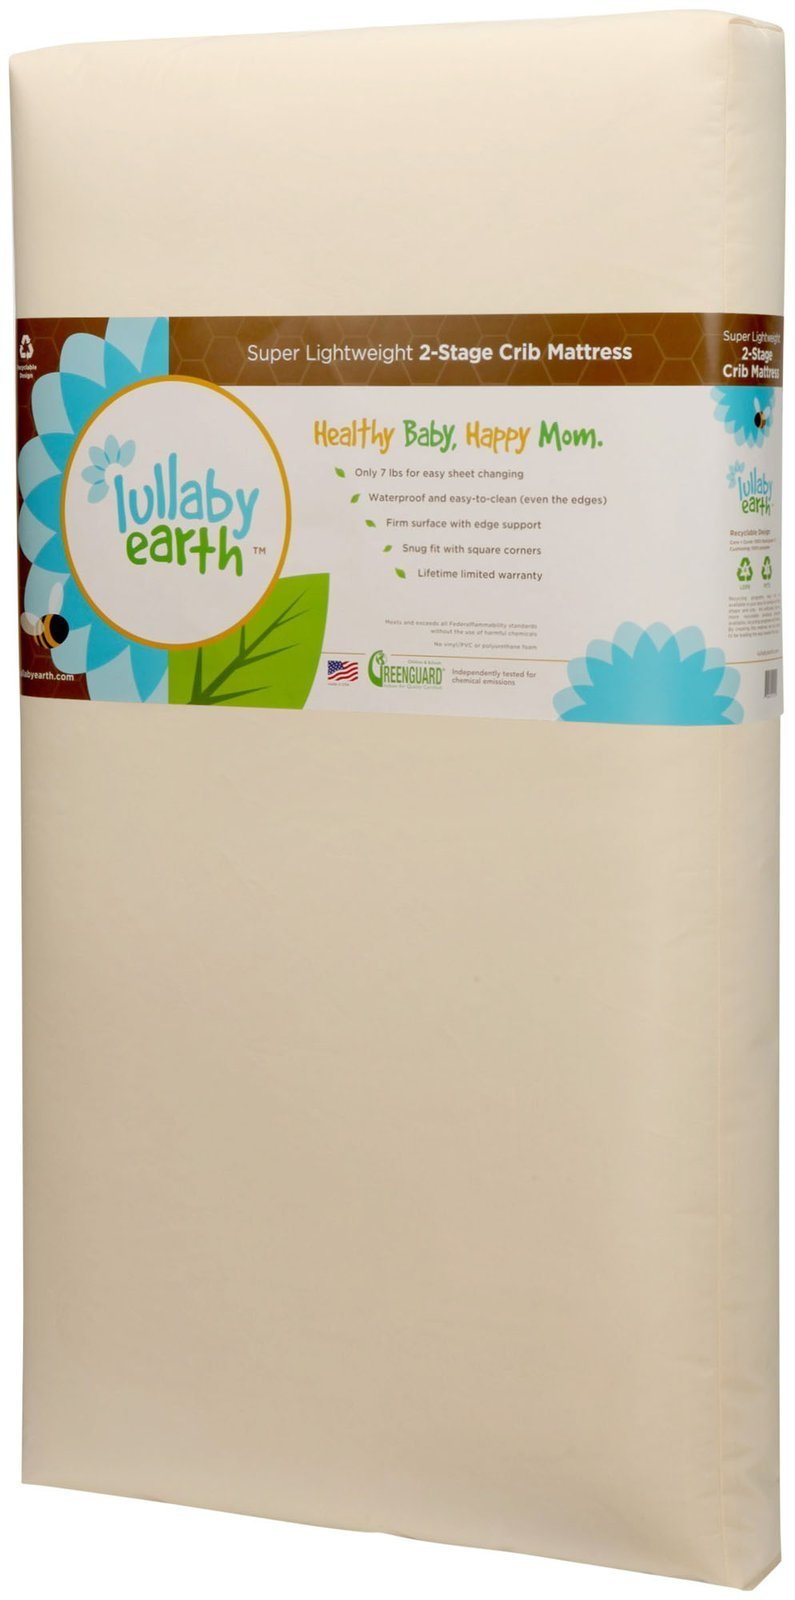 Lullaby Earth Healthy Support Crib Mattress 2-stage by Lullaby Earth (Image #2)